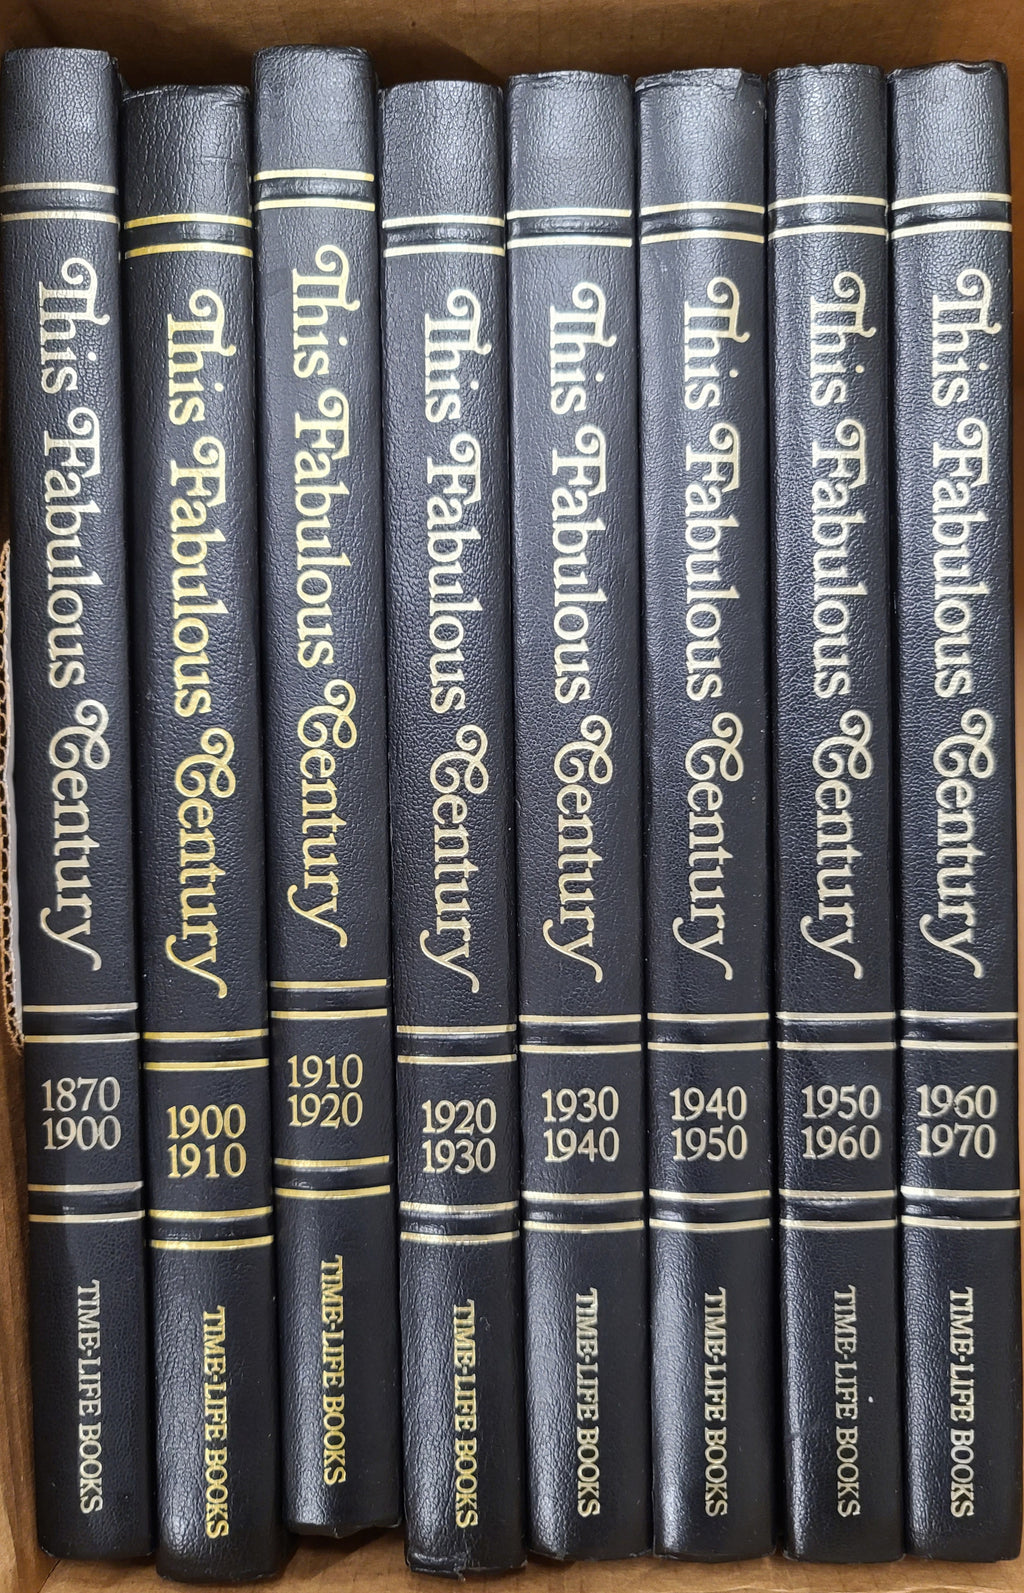 Time Life Books This Fabulous Century 1870 - 1970